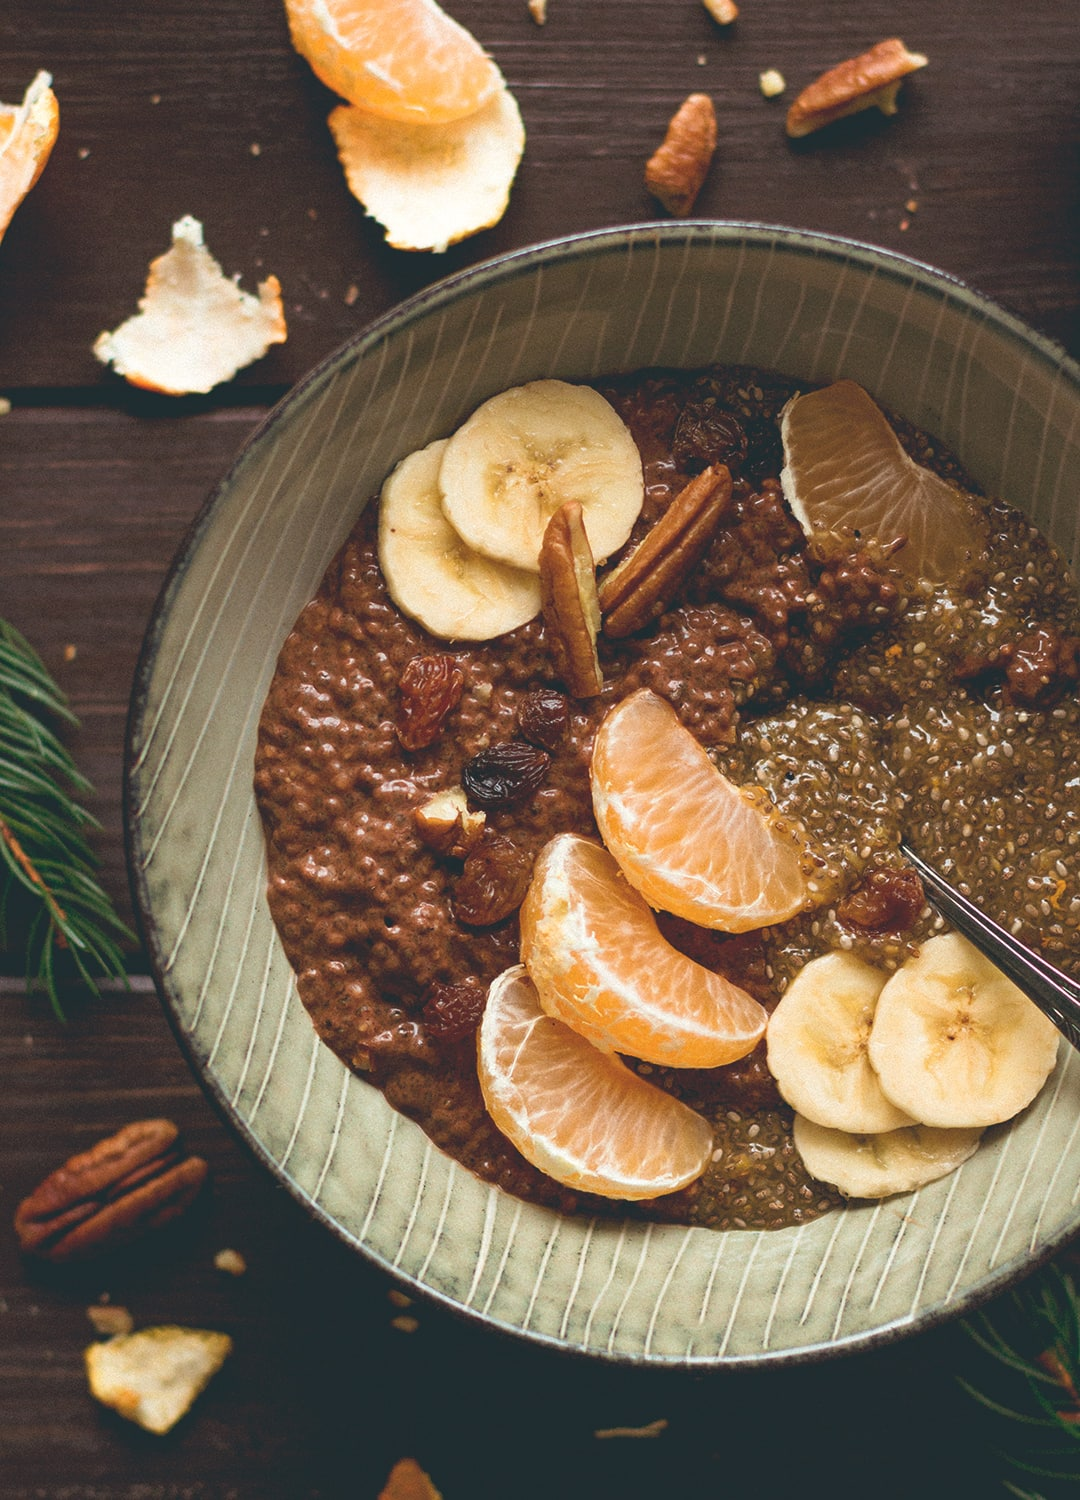 Tangerine Chocolate Chia Pudding - delicious refreshing, chocolatey breakfast you will love! Vegan, gluten-free and easy to make the night before so you can just grab it and go in the morning! | thehealthfulideas.com